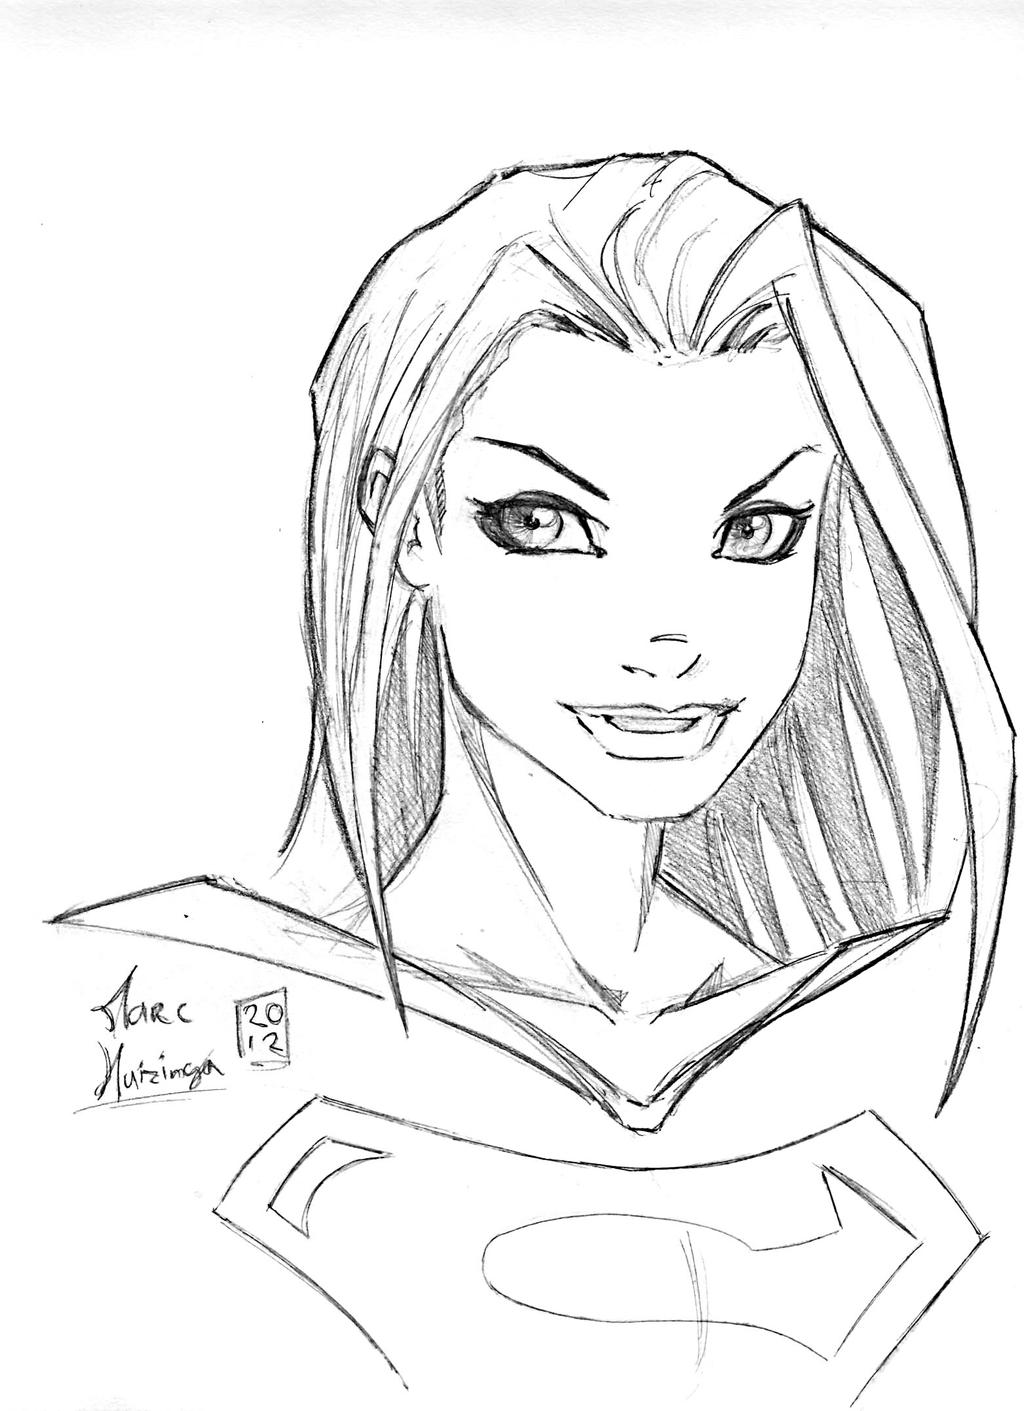 Supergirl warmup by marc f huizinga on deviantart for Supergirl coloring page